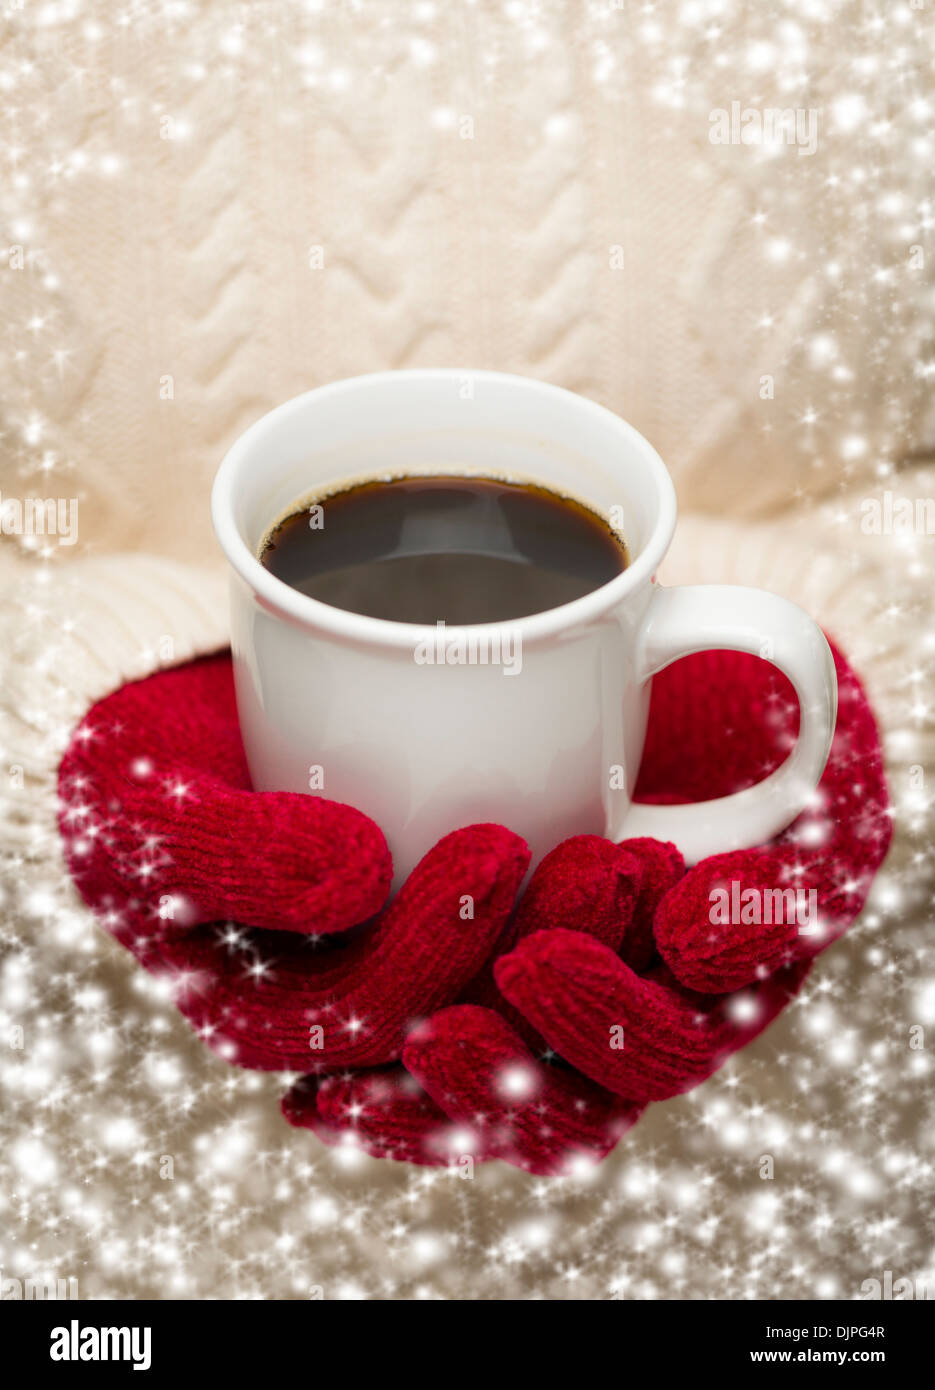 Woman in Sweater with Seasonal Red Mittens Holding a Warm Cup of Coffee with Snow Flakes Border. - Stock Image